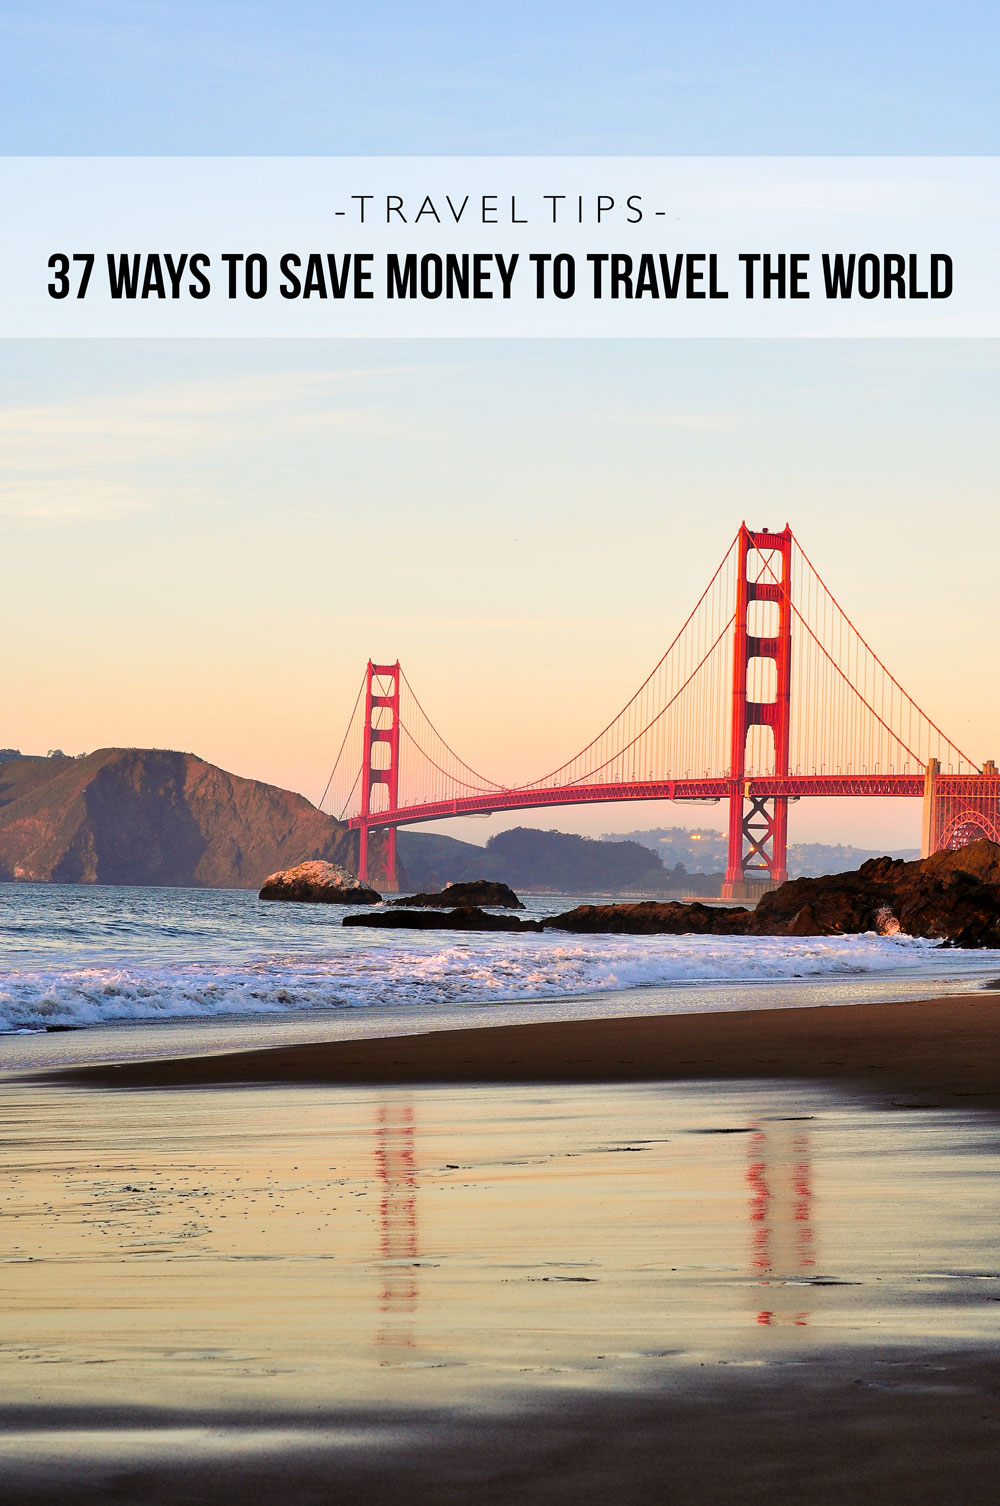 37 Ways To Save Money To Travel The World